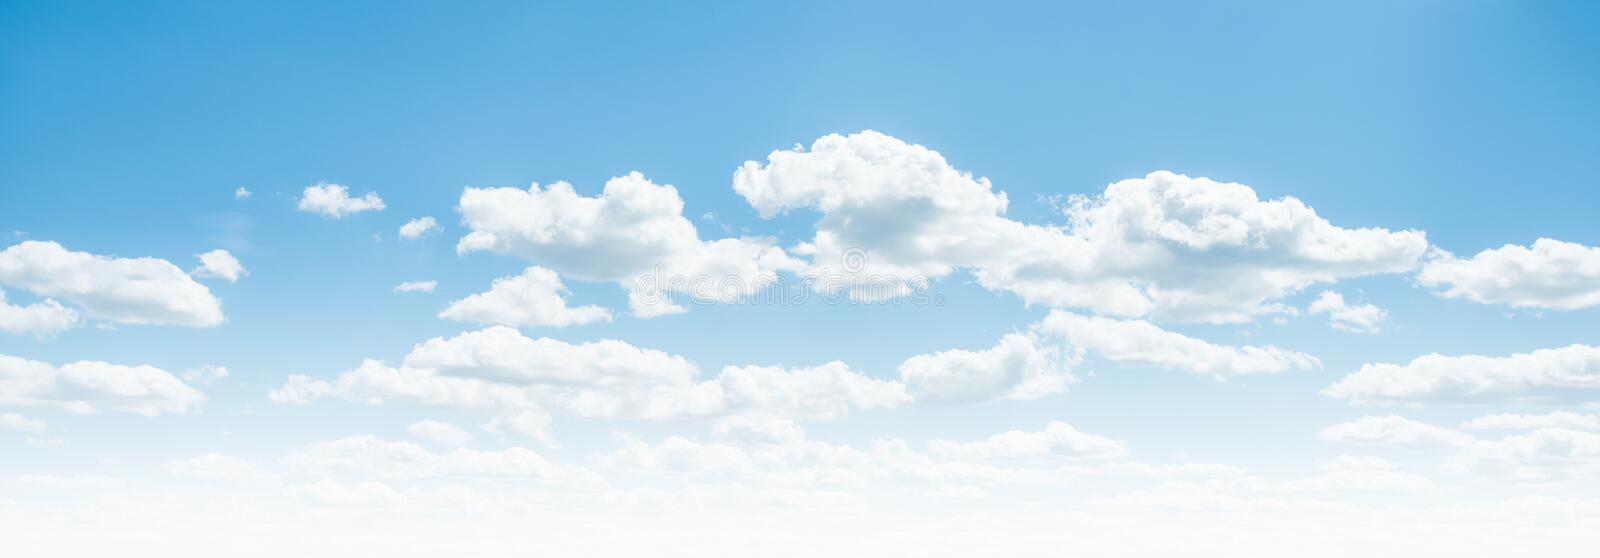 Clear blue sky and white clouds royalty free stock images